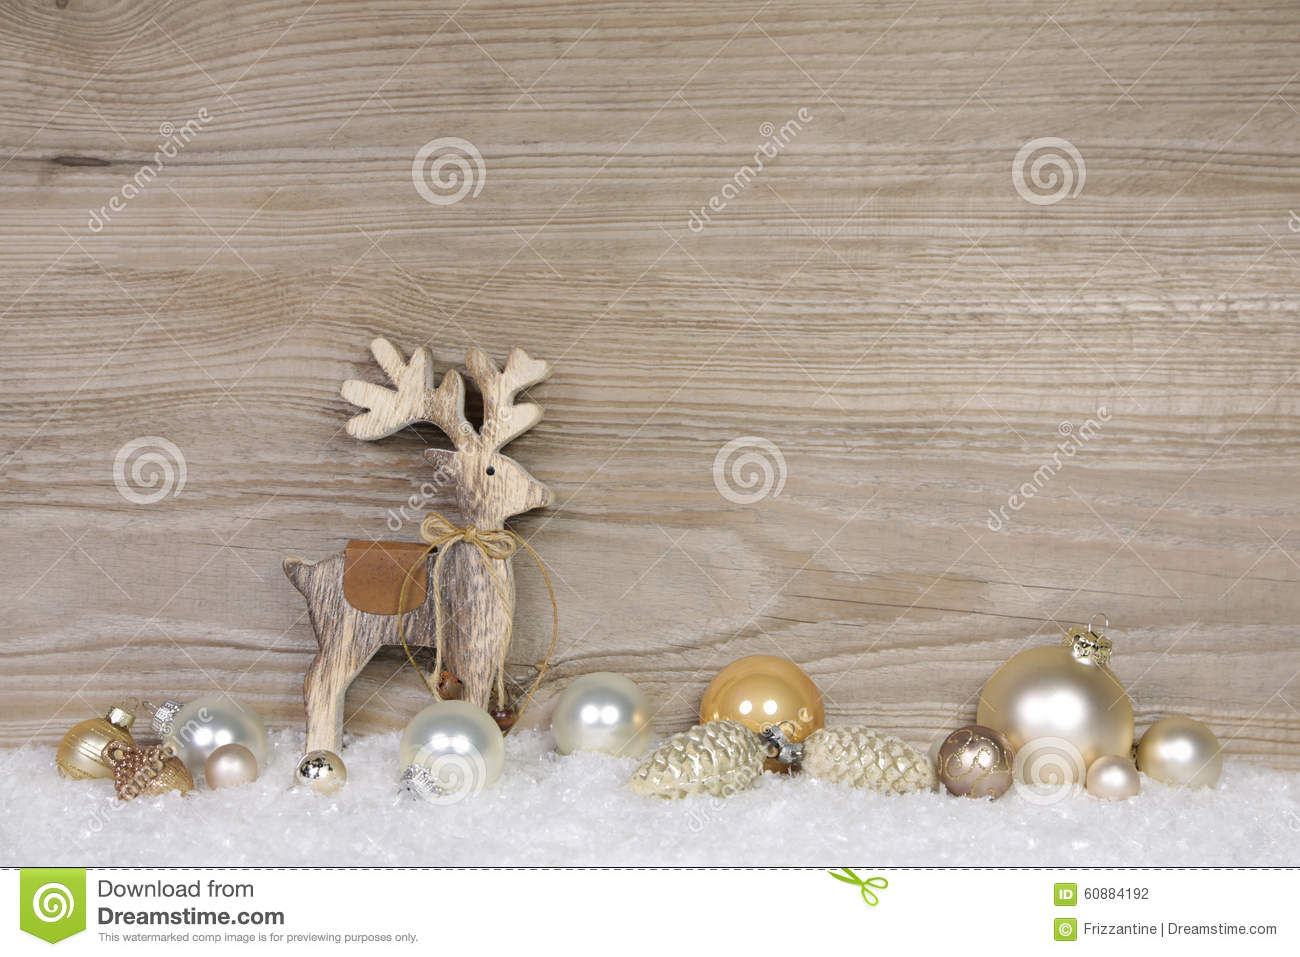 Decorazione stile country di natale per una cartolina d - Natale country decorazioni ...